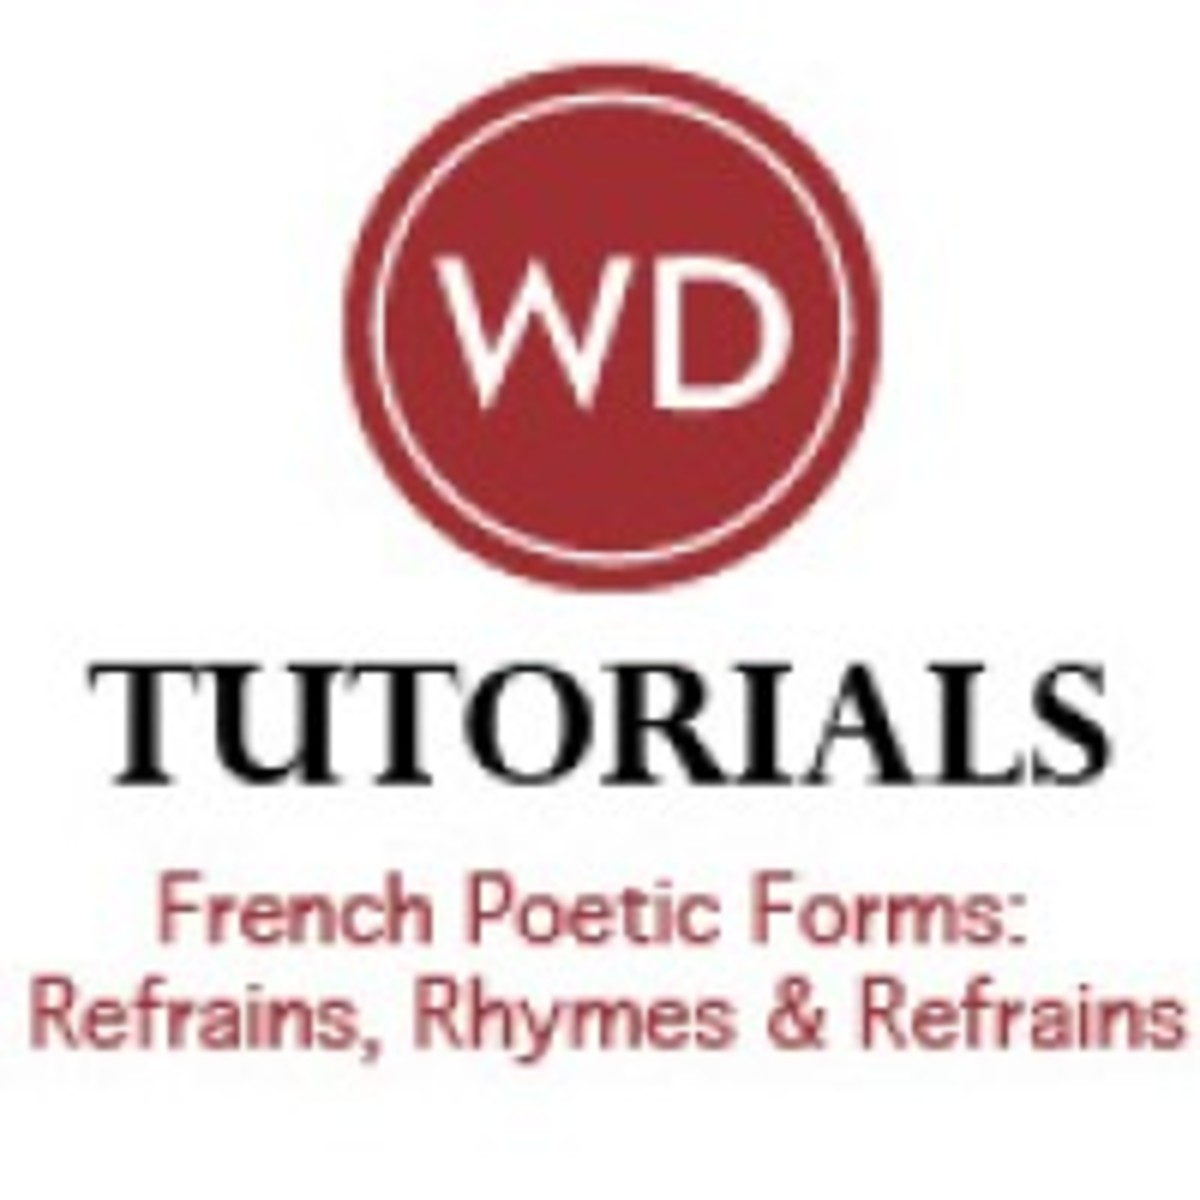 French Poetic Forms